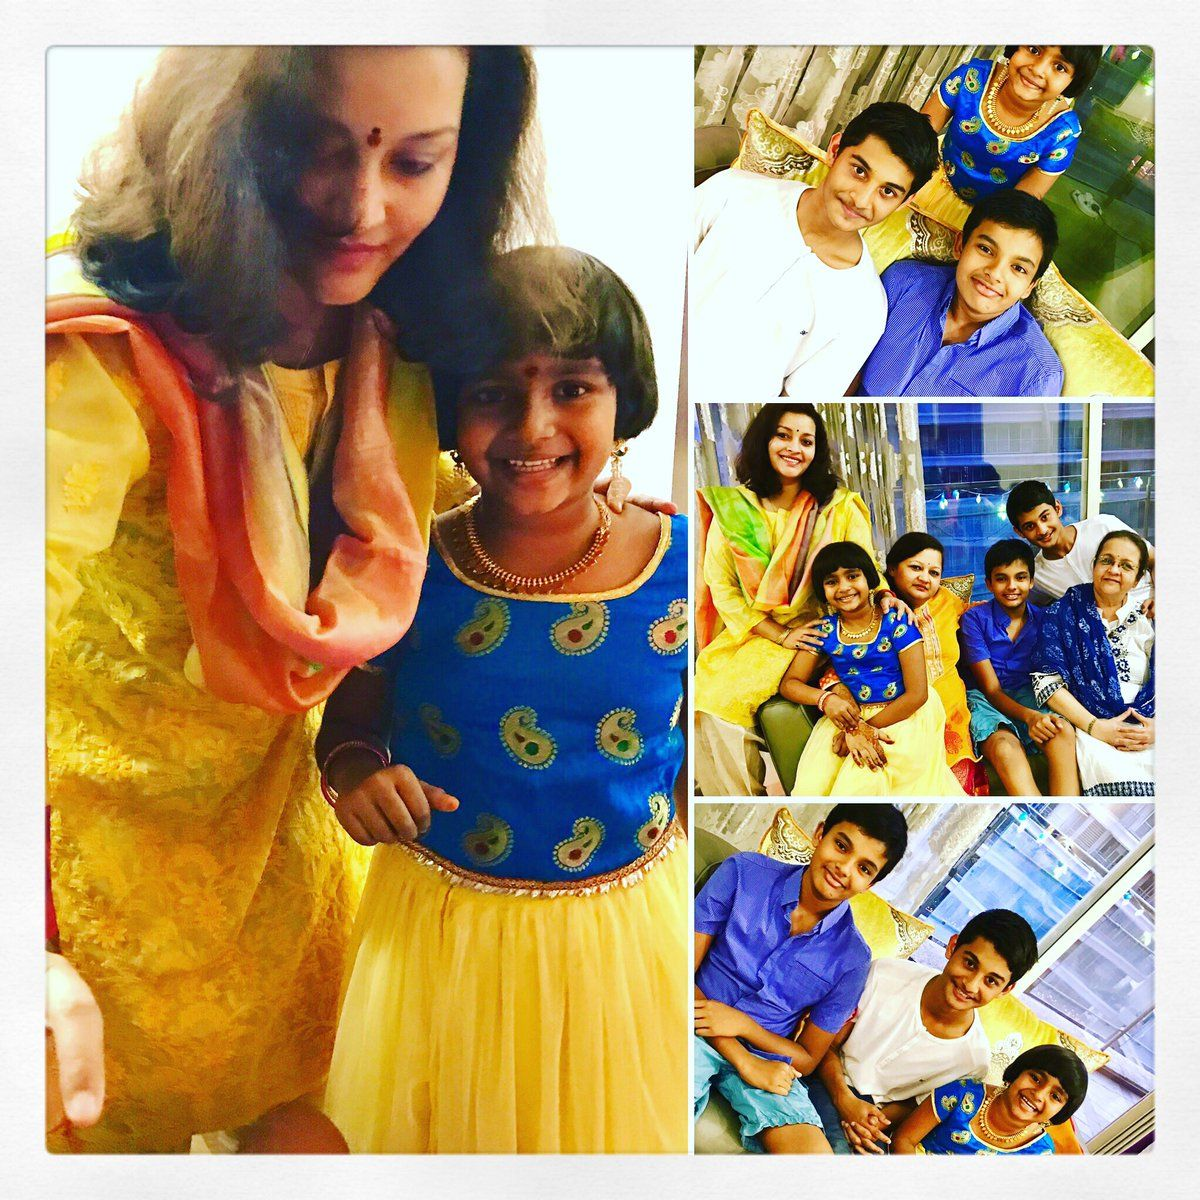 Viral News Updates: Pawan Kalyan's Son & Daughter Cute Pictures. Recently The